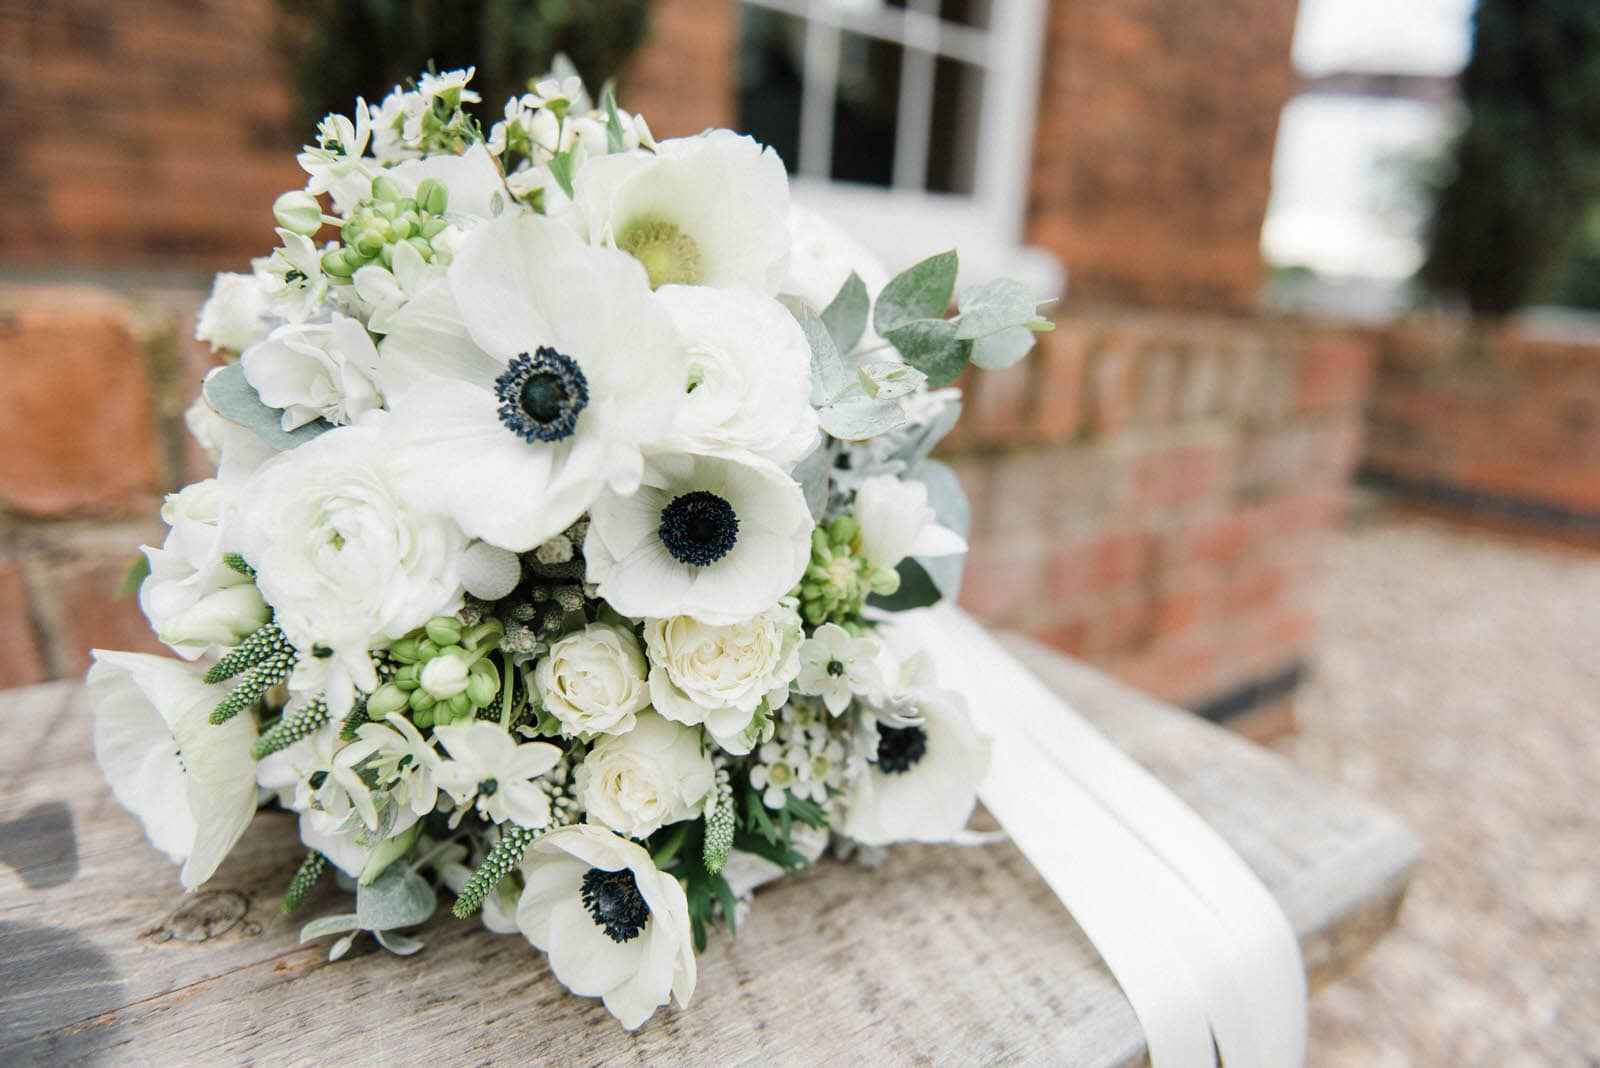 Nottingham wedding photography - Old Vicarage Boutique wedding photographers - Mrs Umbels wedding bouquet